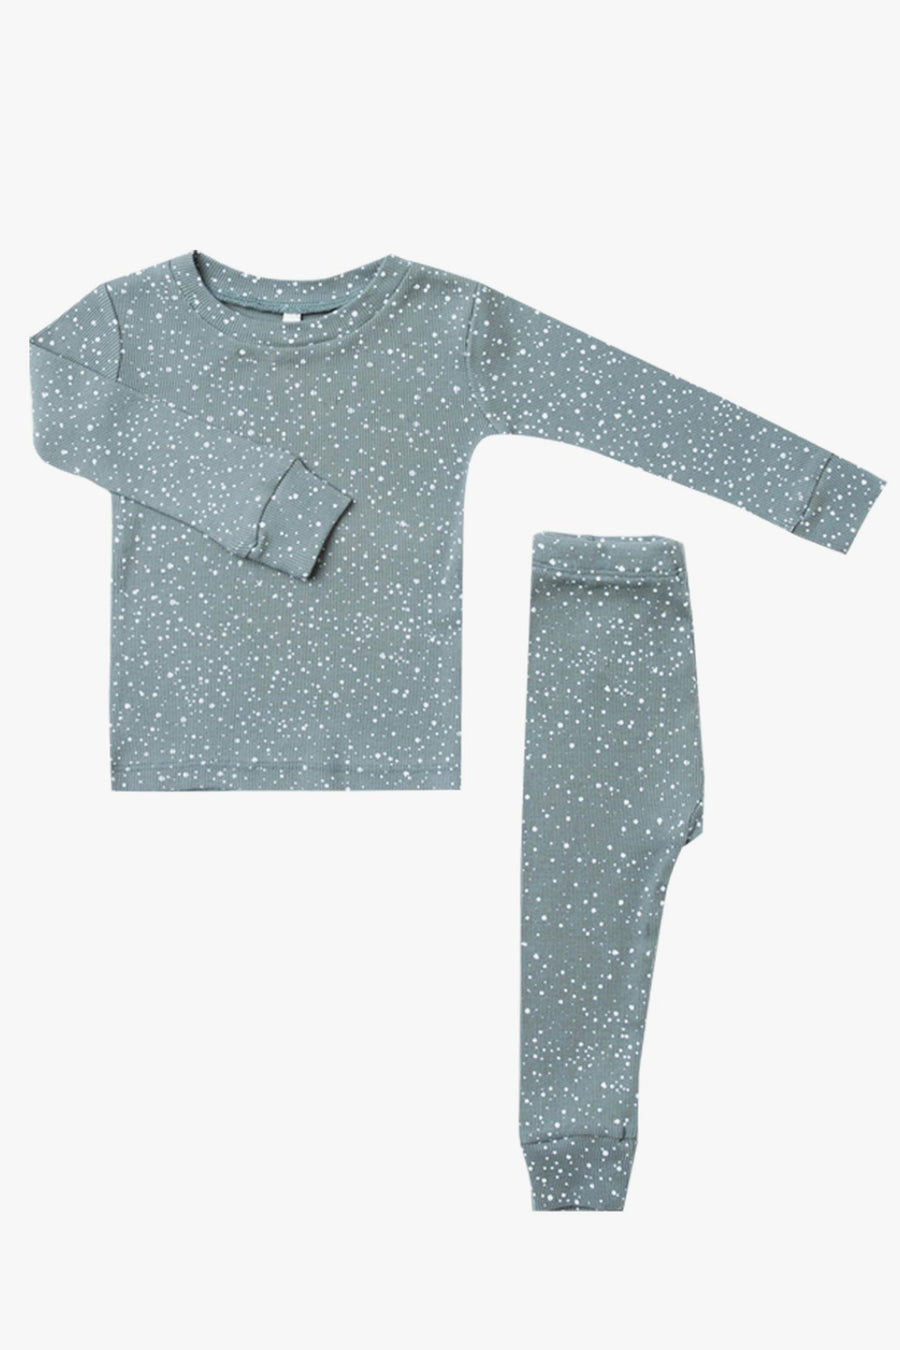 Rylee + Cru Snow Pajama Set